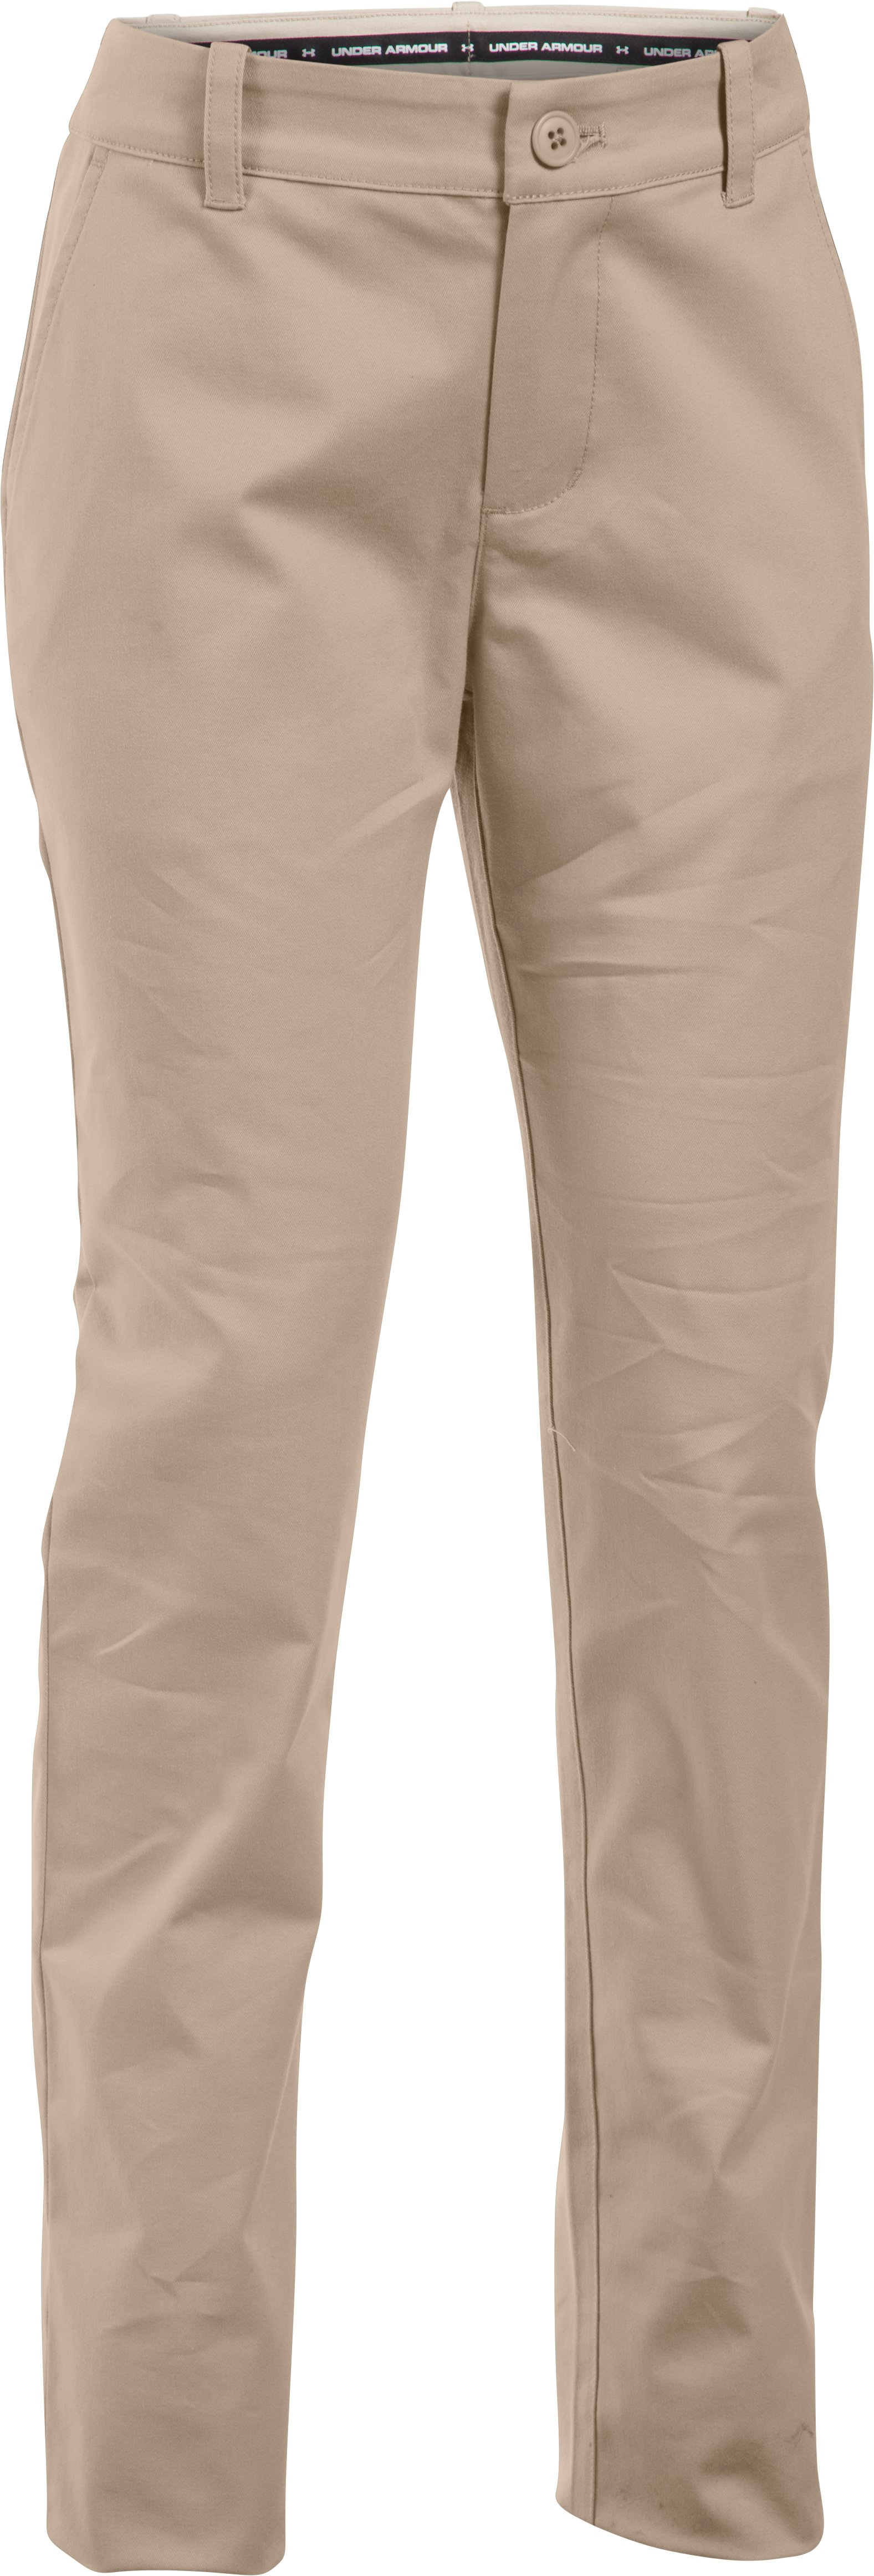 Girls' UA Uniform Chino Pants – Pre-School, Desert Sand